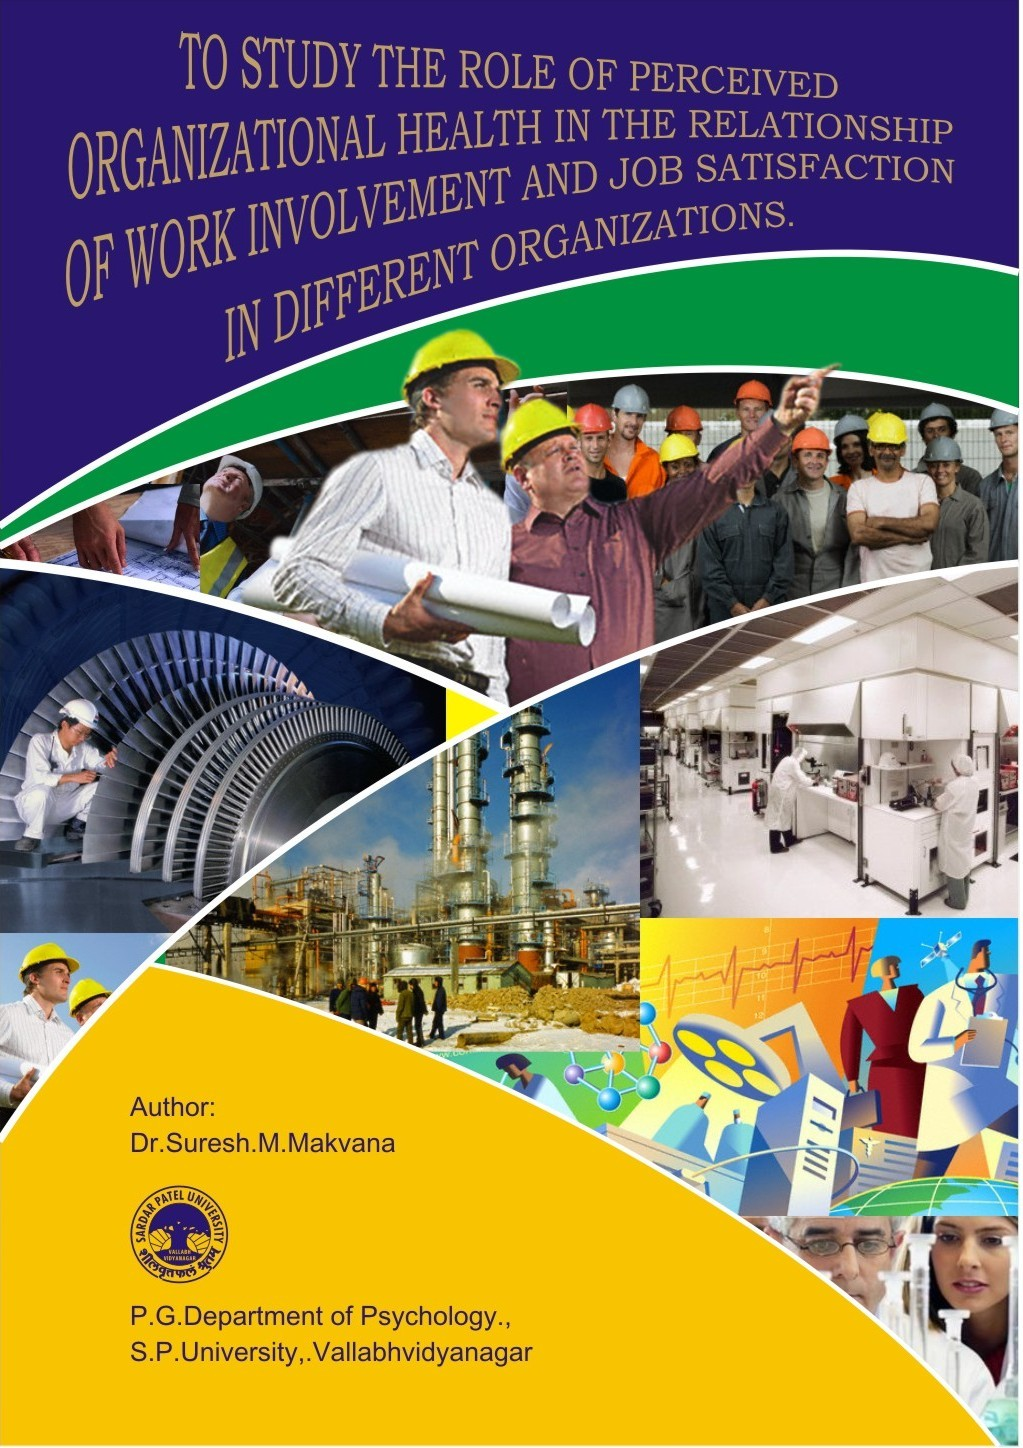 To Study The Role Of Perceived Organizational Health In The Relationship Of Work Involvement  And Job Satisfaction In Different Organizations Dr. Suresh Makvana